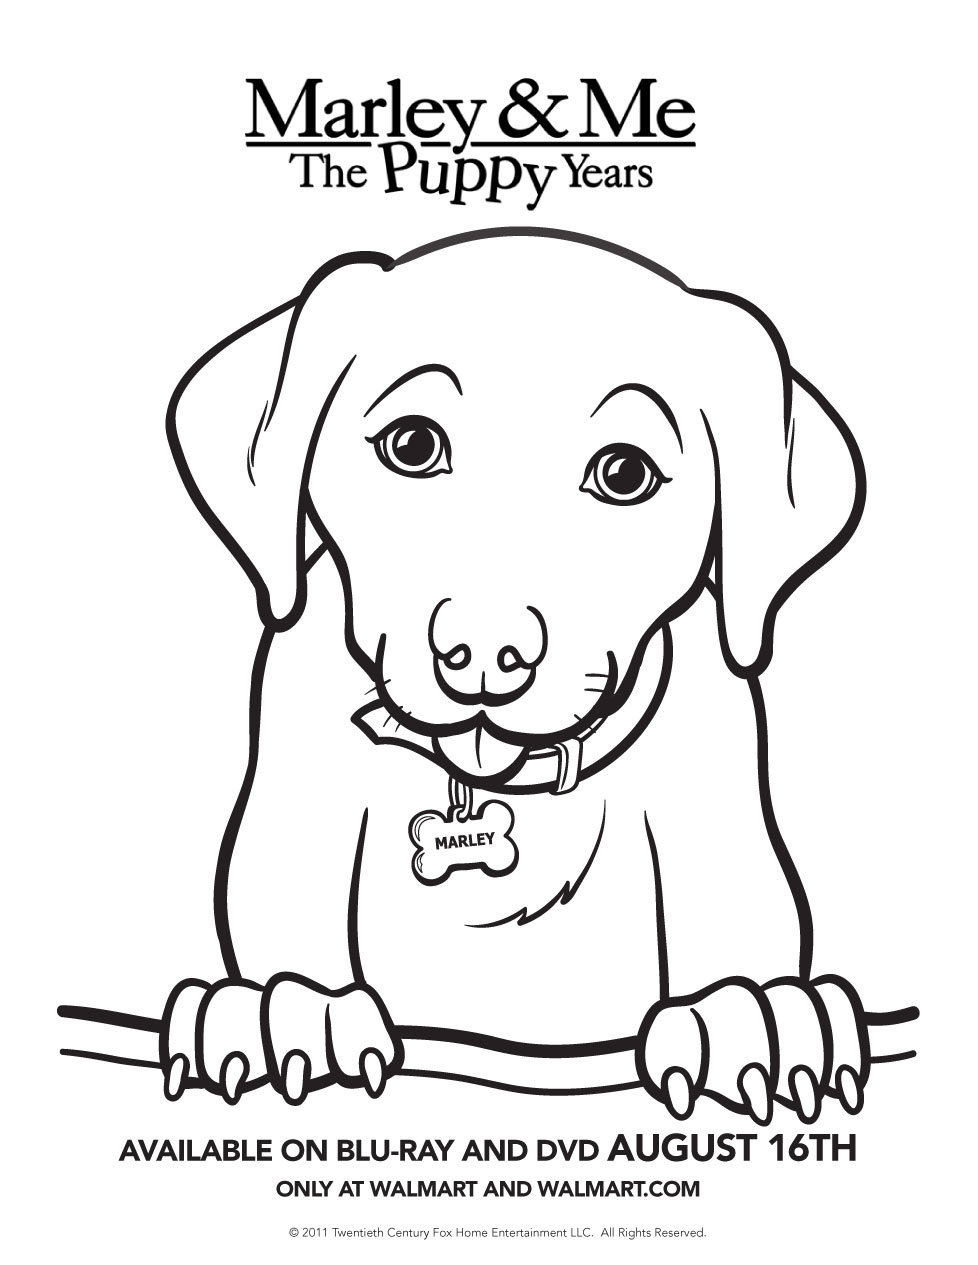 Dad of Divas' Reviews: MARLEY & ME: THE PUPPY YEARS